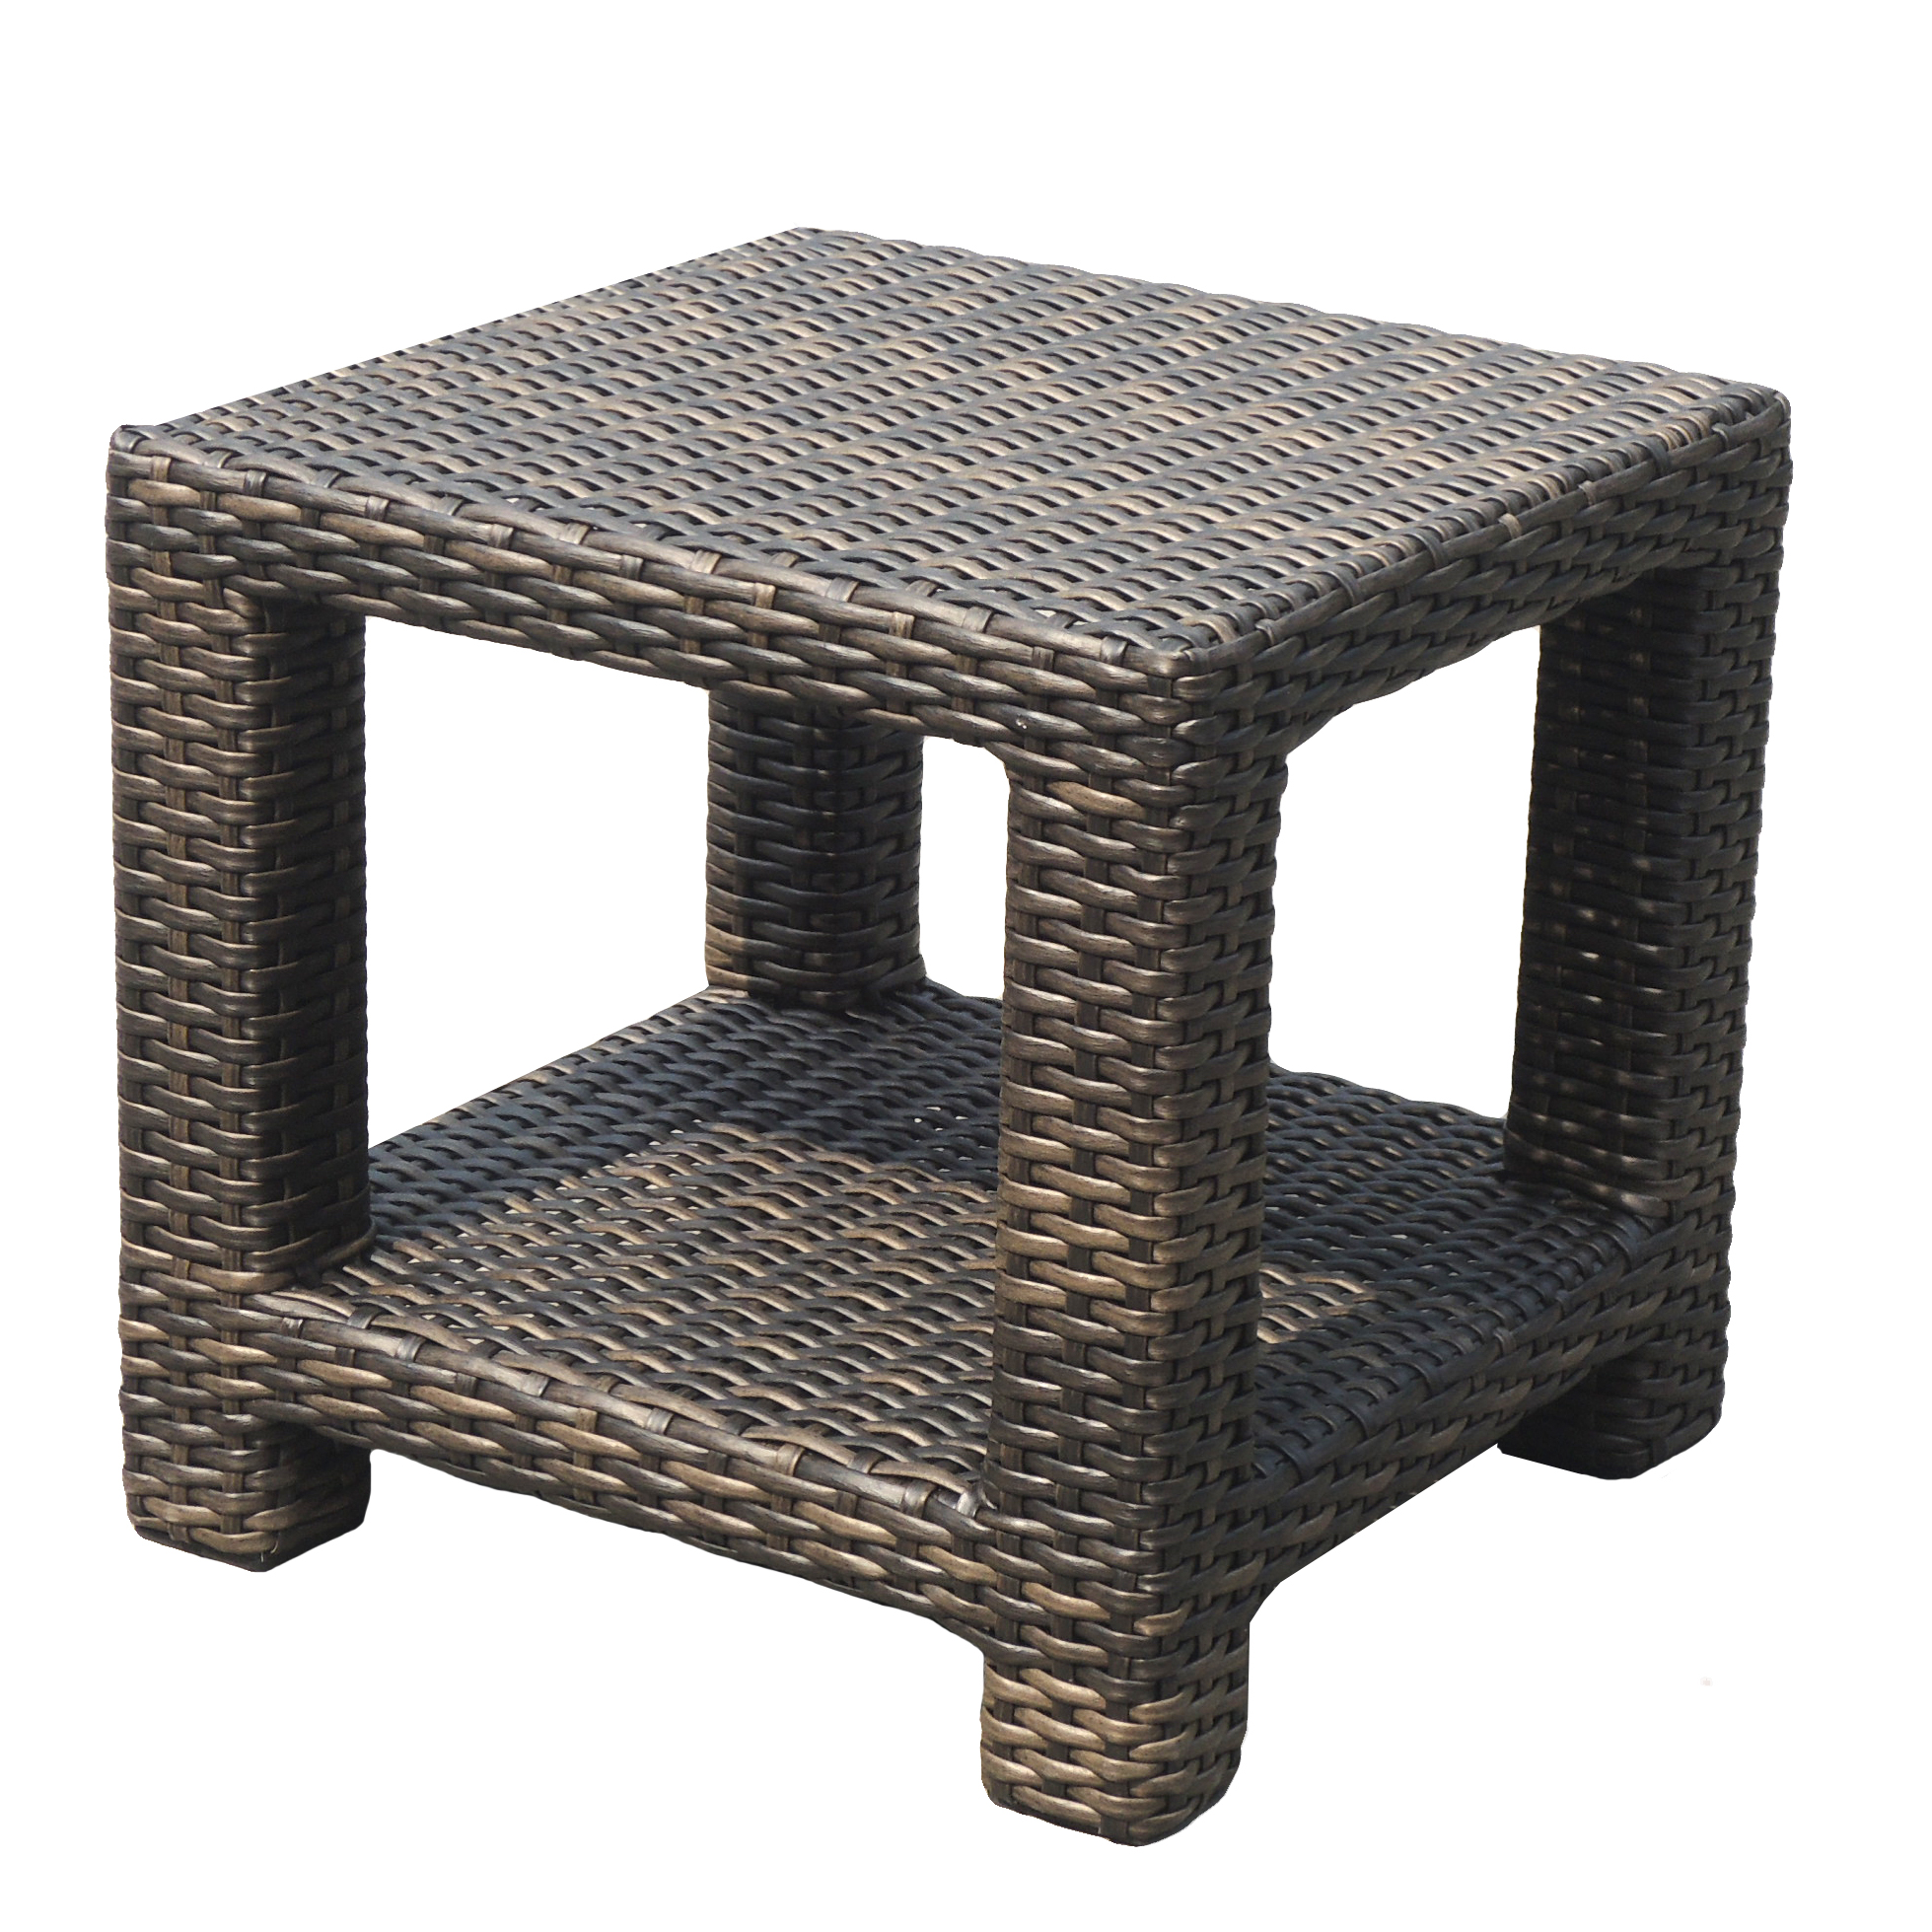 TIVOLI END TABLE RC961 $300.00